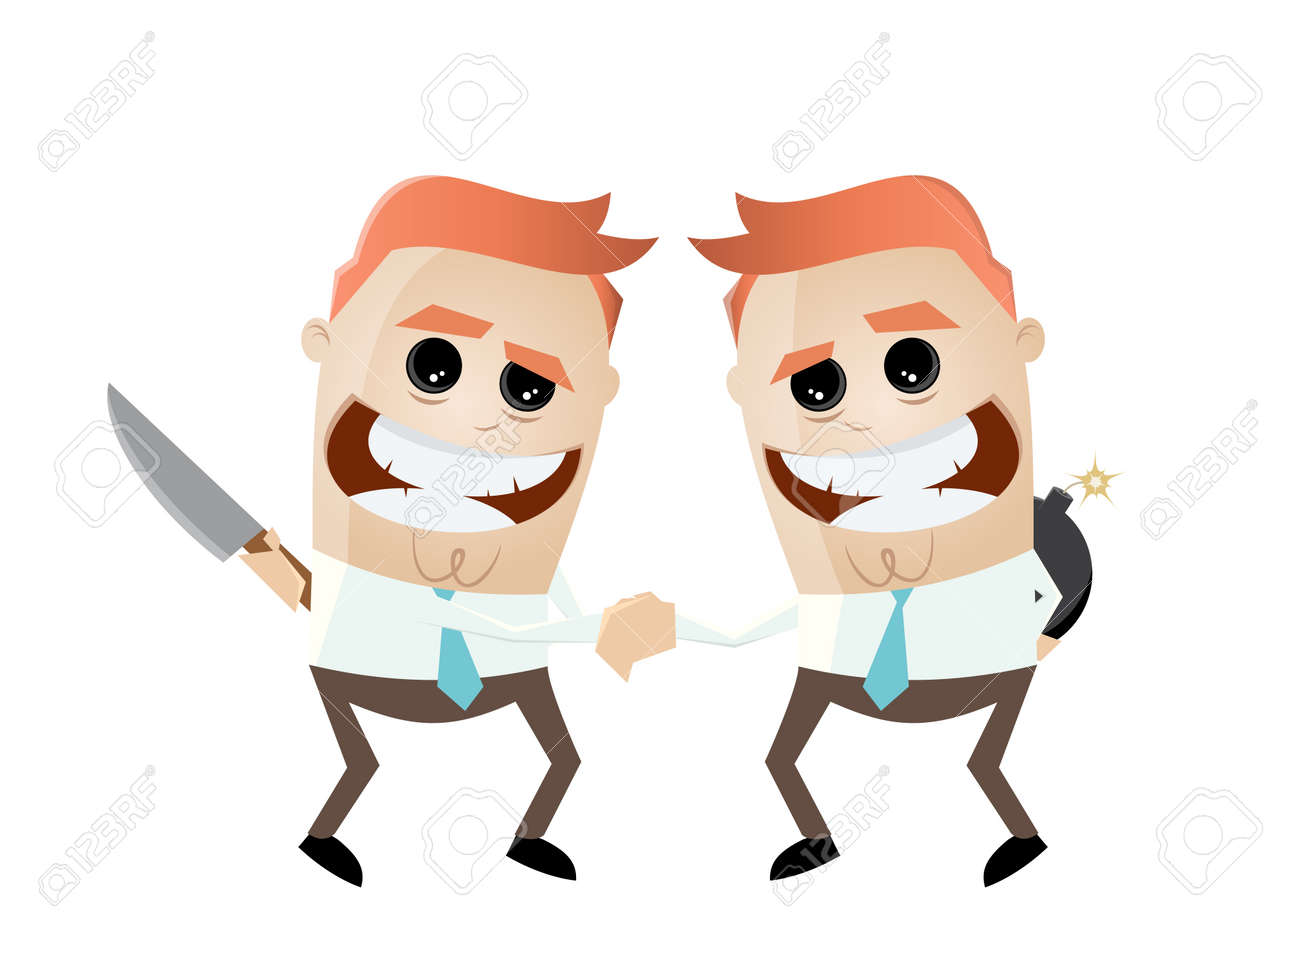 shaking hands with weapons behind cartoon royalty free cliparts rh 123rf com political cartoon shaking hands cartoon characters shaking hands